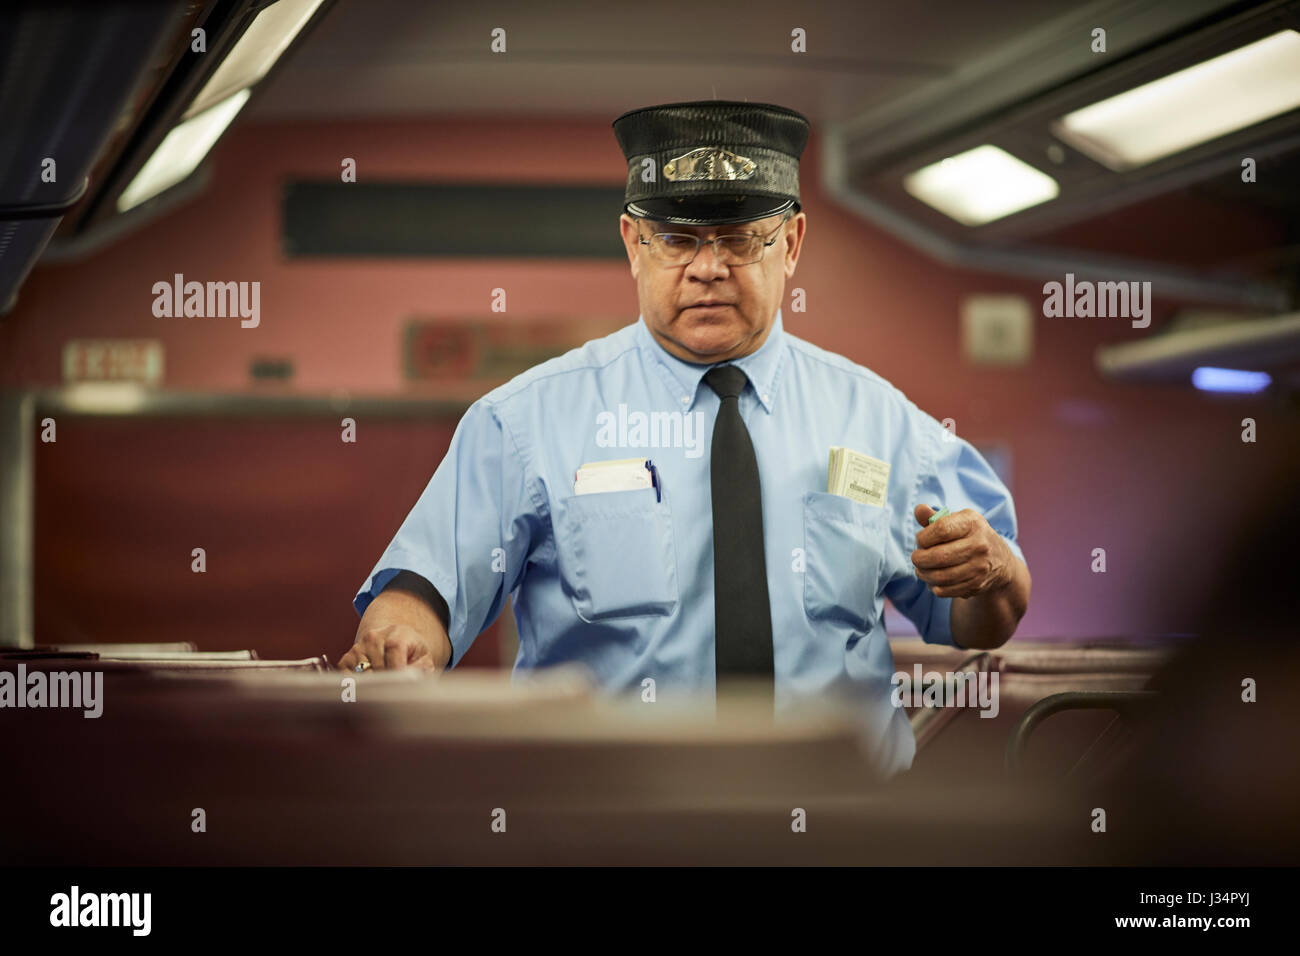 Massachusetts Bay Transportation Authority Guard Inspektion Karten in einem Zug nach Boston, Massachusetts, Vereinigte Stockbild